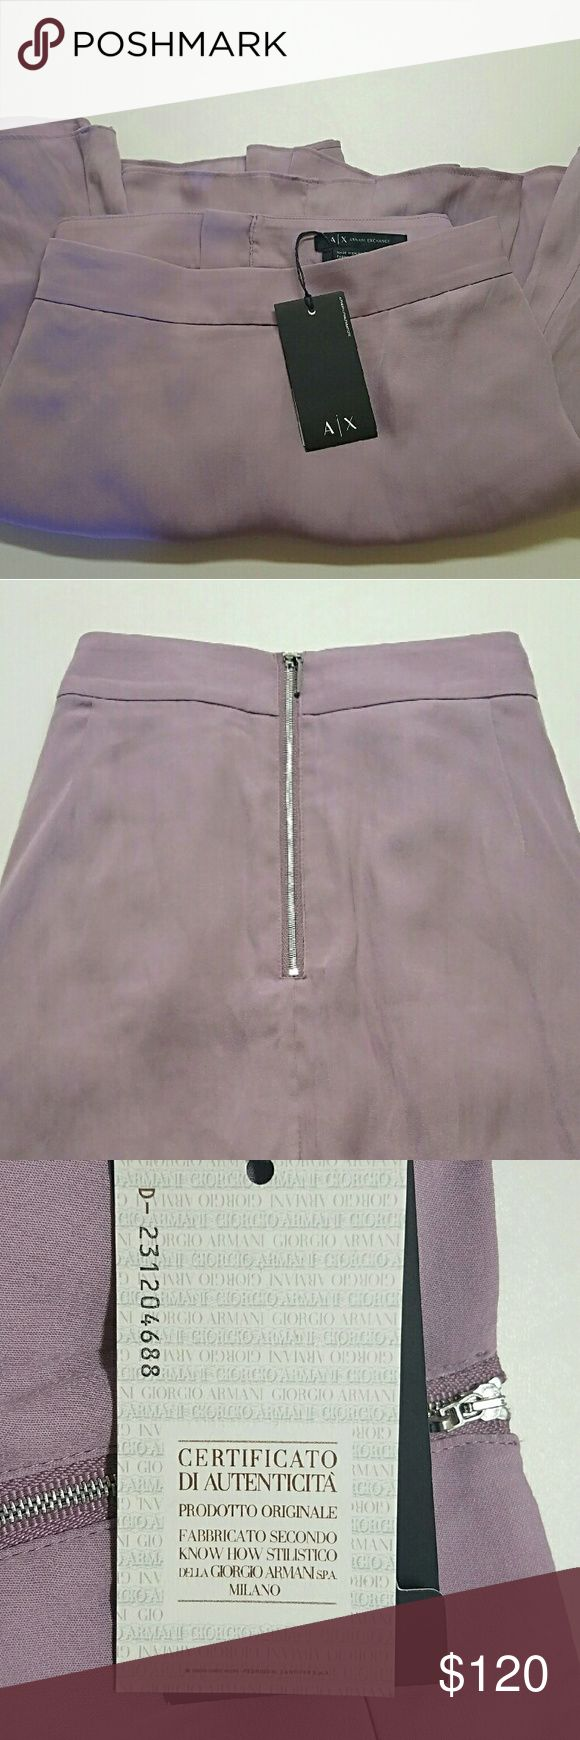 ARMANI X  Mystic Mauve Silk Mini Skort AX Mini Skort in Mystic Mauve. Made in a lightweight flowy silk. This is definitely fun and flirty, especially for summer. Perfect for day into night!!! Silver zip up back. Two fitted side pockets. Don't let this gem get away, these are VERY hard to find!!! Armani Exchange Skirts Mini